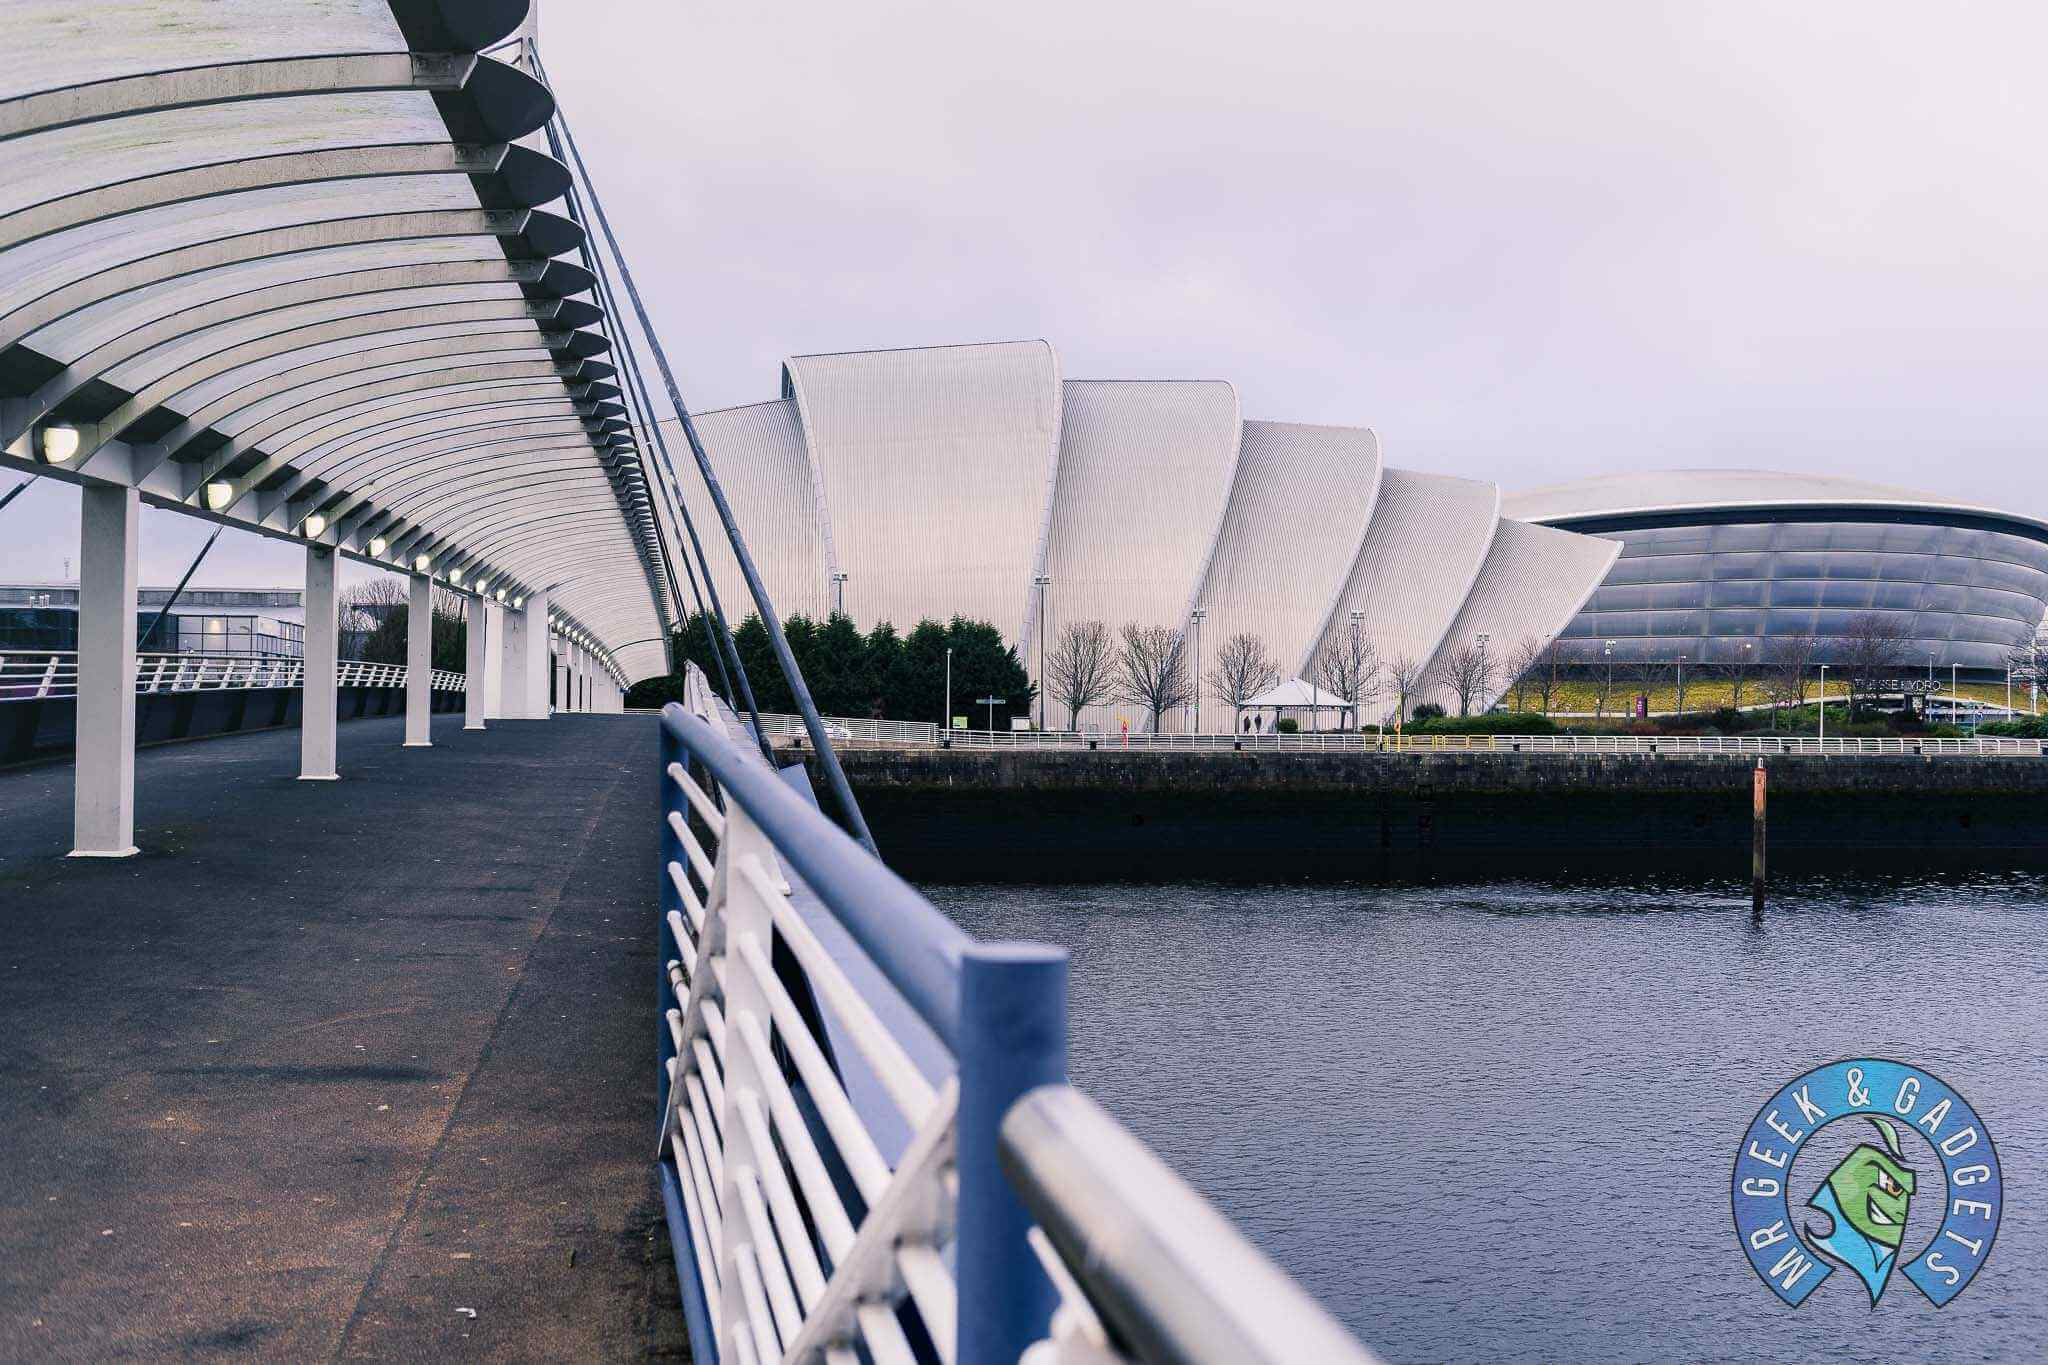 850_8411 | Snapping My Way Around Glasgow